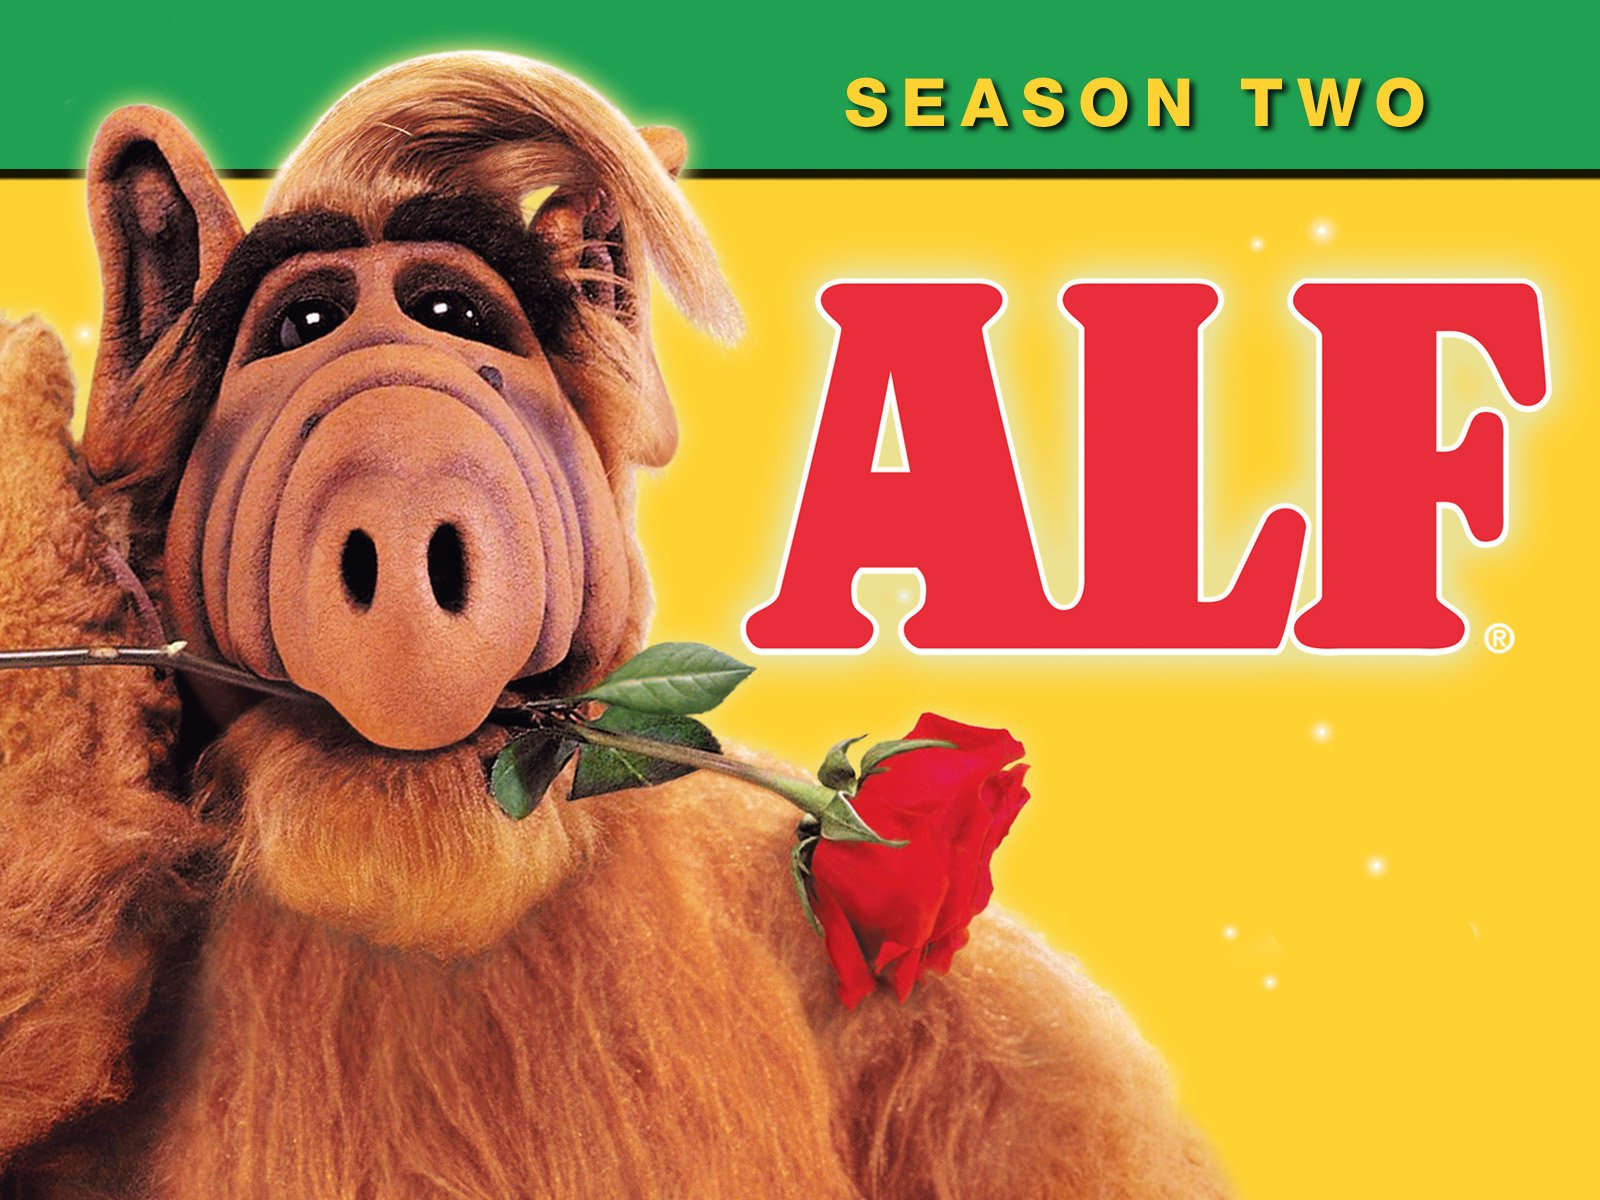 amazoncom alf season 2 - Alf Halloween Episode